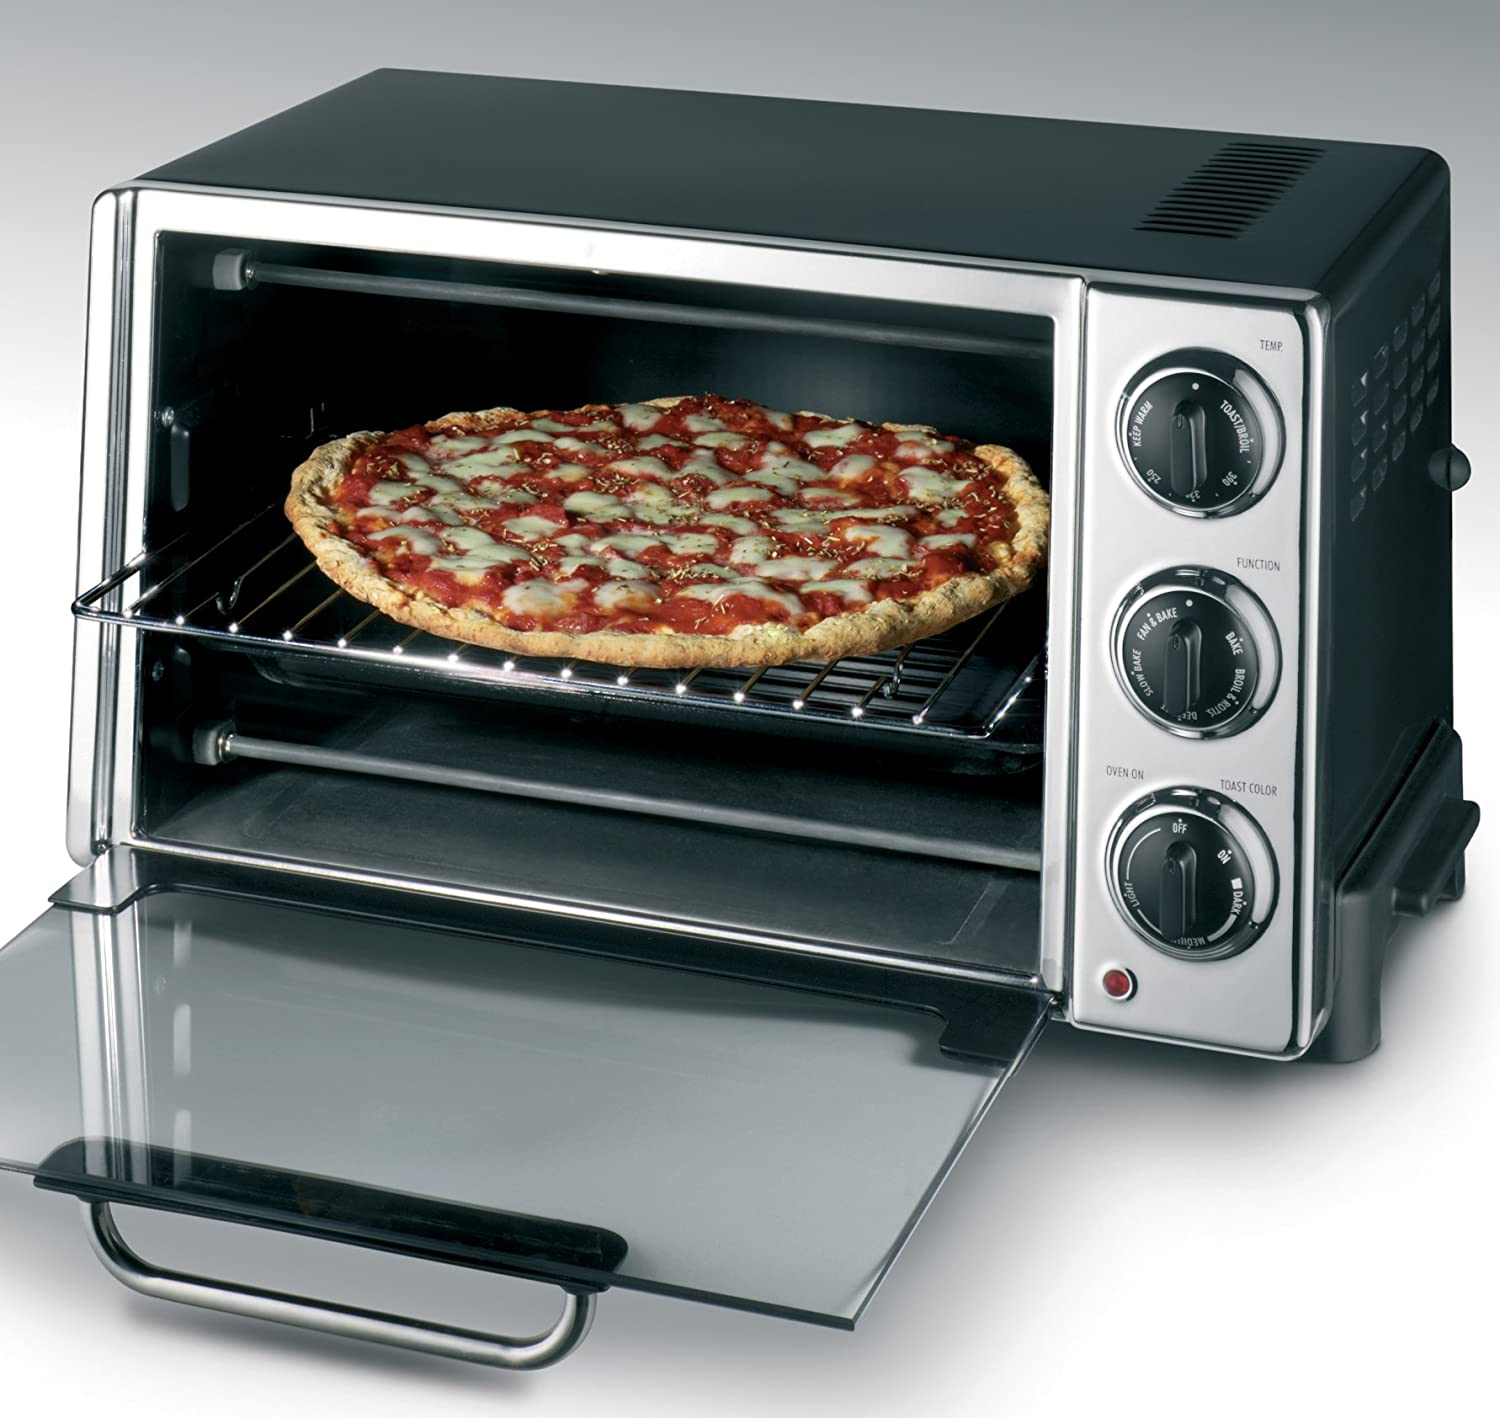 countertop convection oven rotisserie bake pizza toaster broil warm food cooking ebay. Black Bedroom Furniture Sets. Home Design Ideas